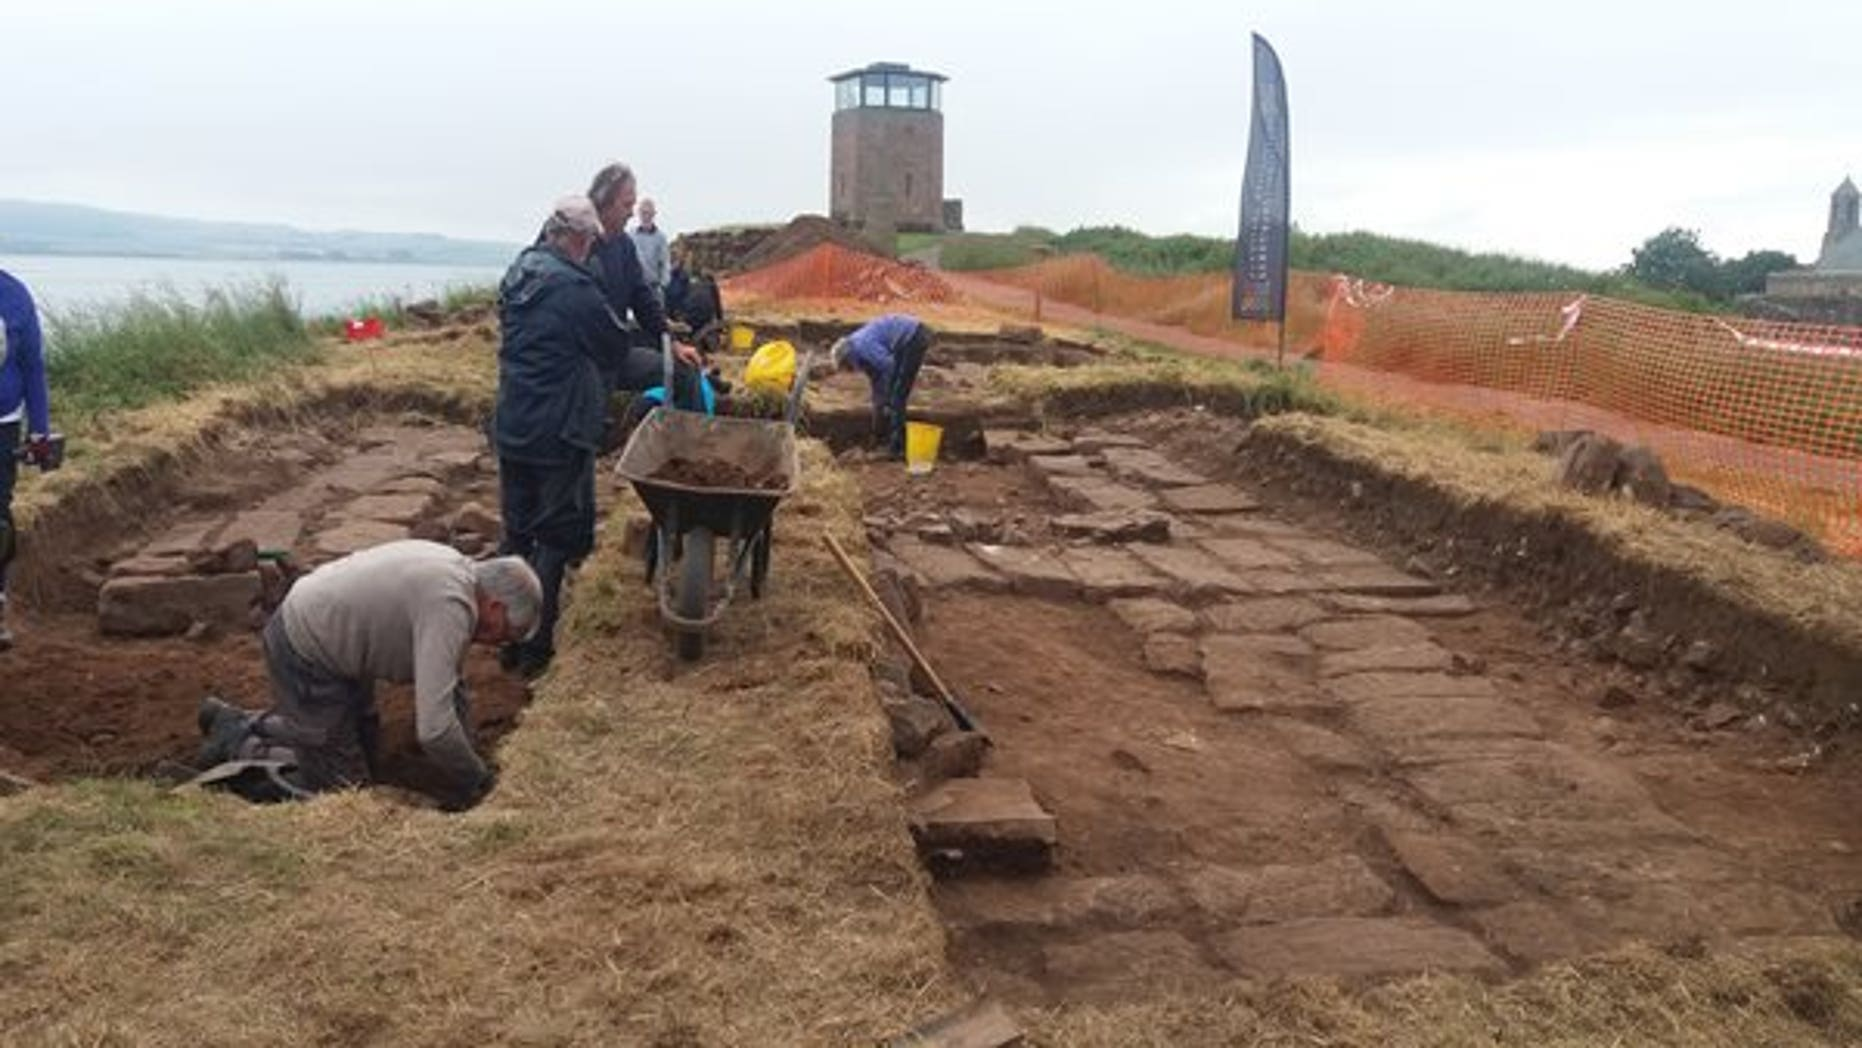 Excavation of the church on the Holy Island of Lindisfarne (Jessica Turner - Northumberland County Council).